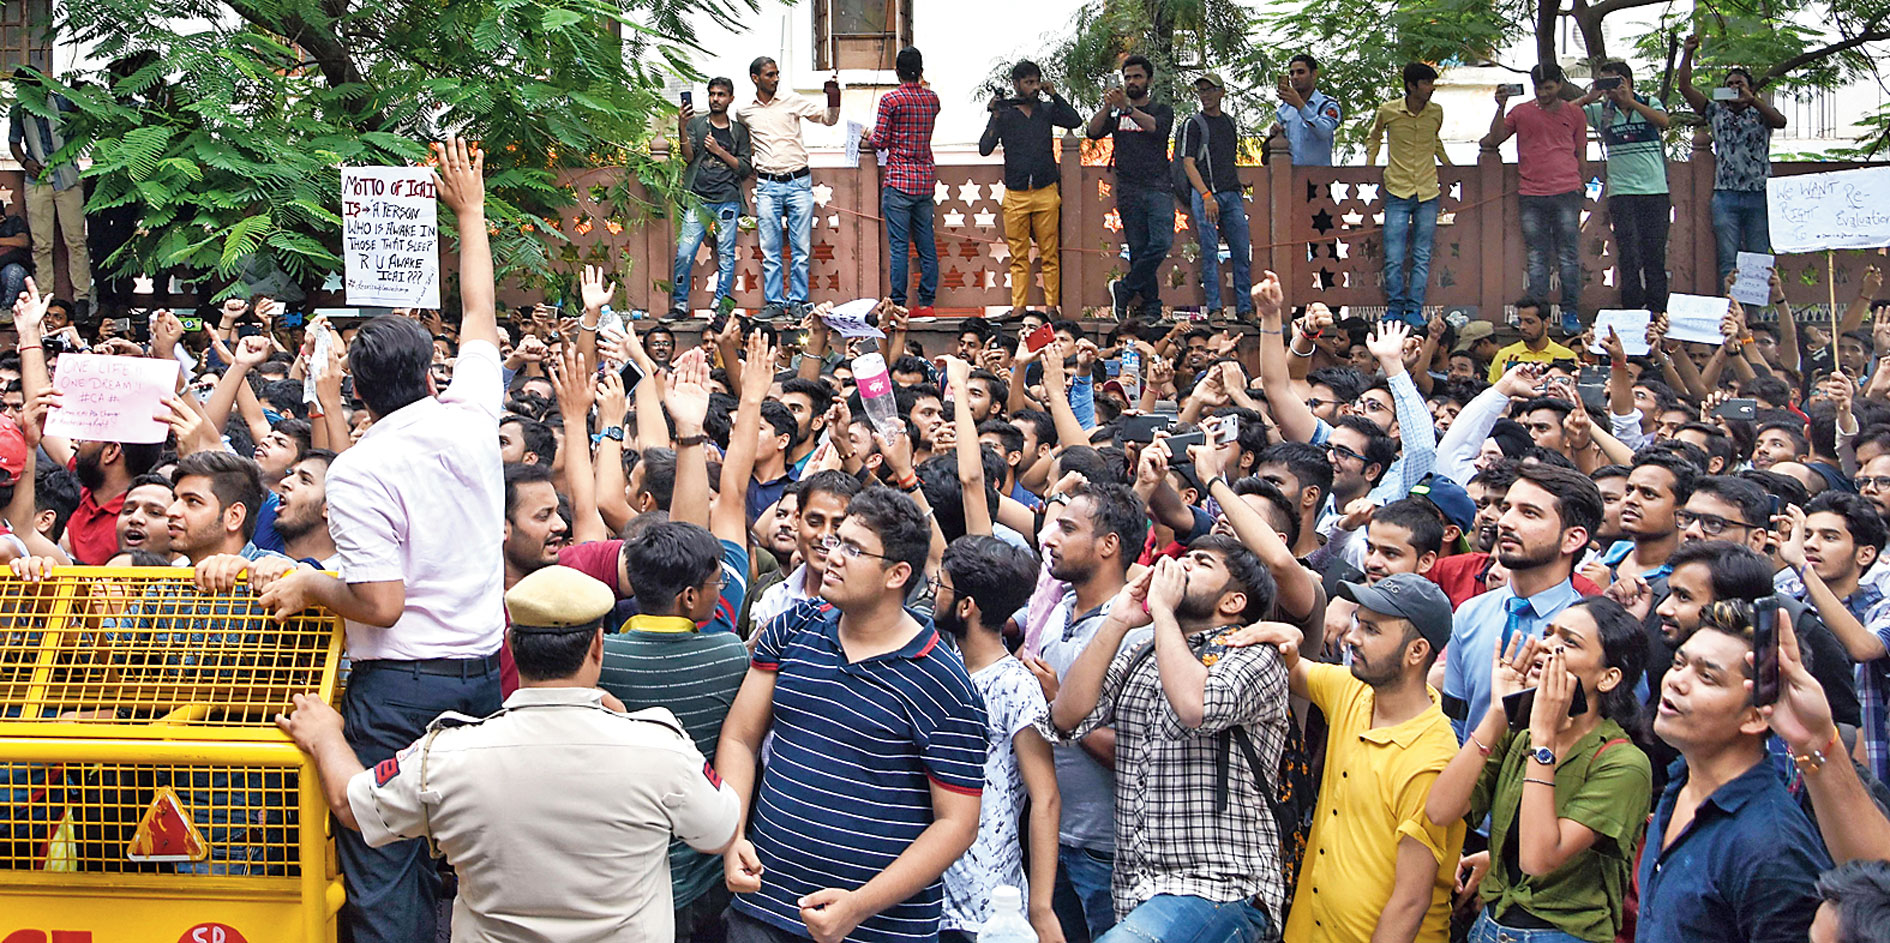 A protest outside the New Delhi office of the Institute of Chartered Accountants of India on Tuesday over allegations that students' answer sheets were not correctly evaluated.